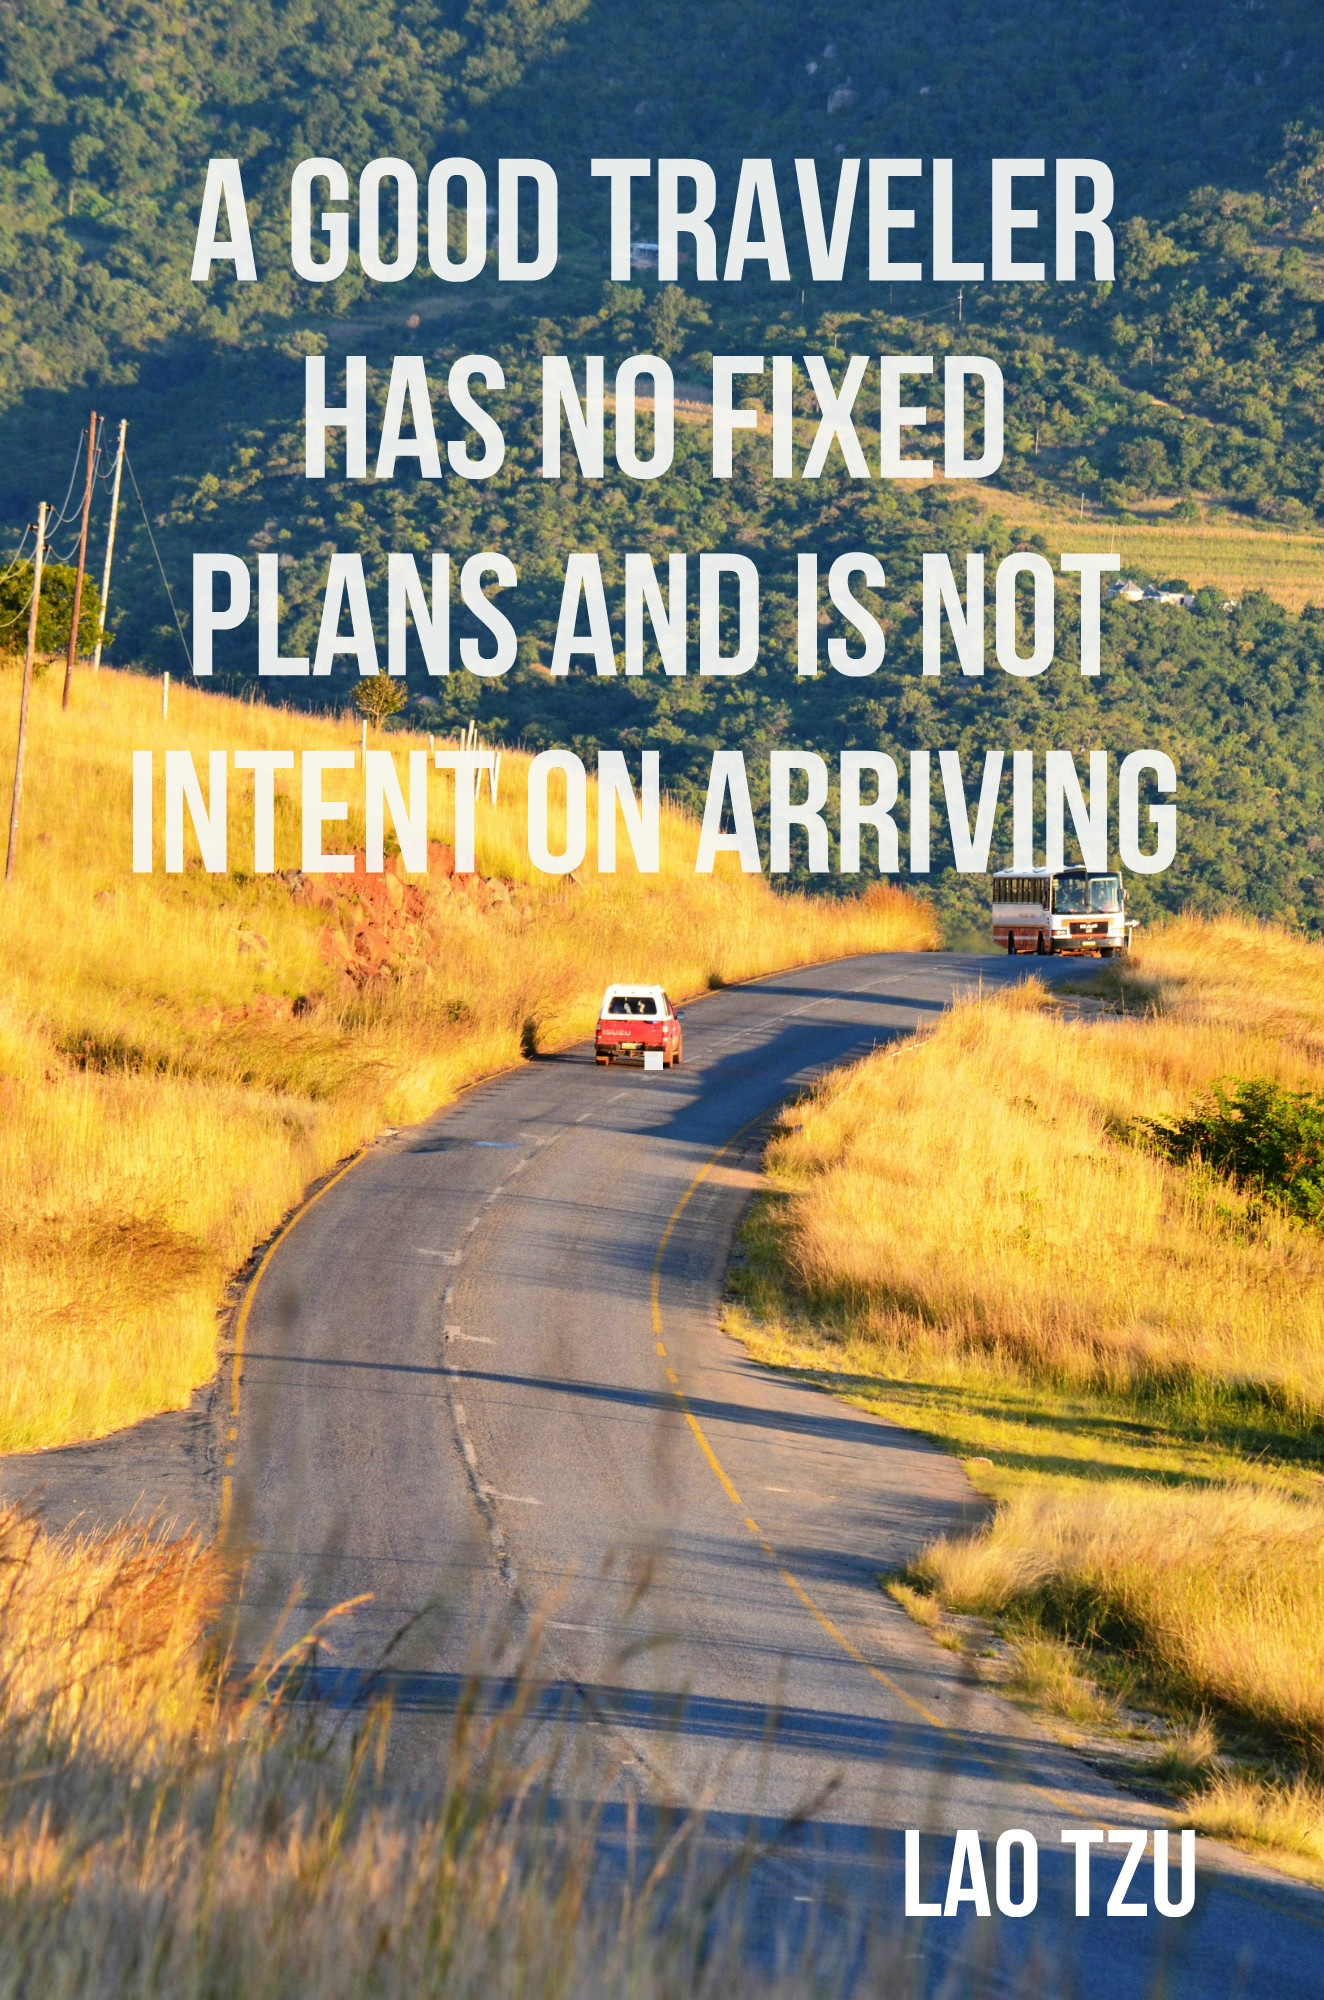 A good traveler has no fixed plans and is not intent upon arriving.